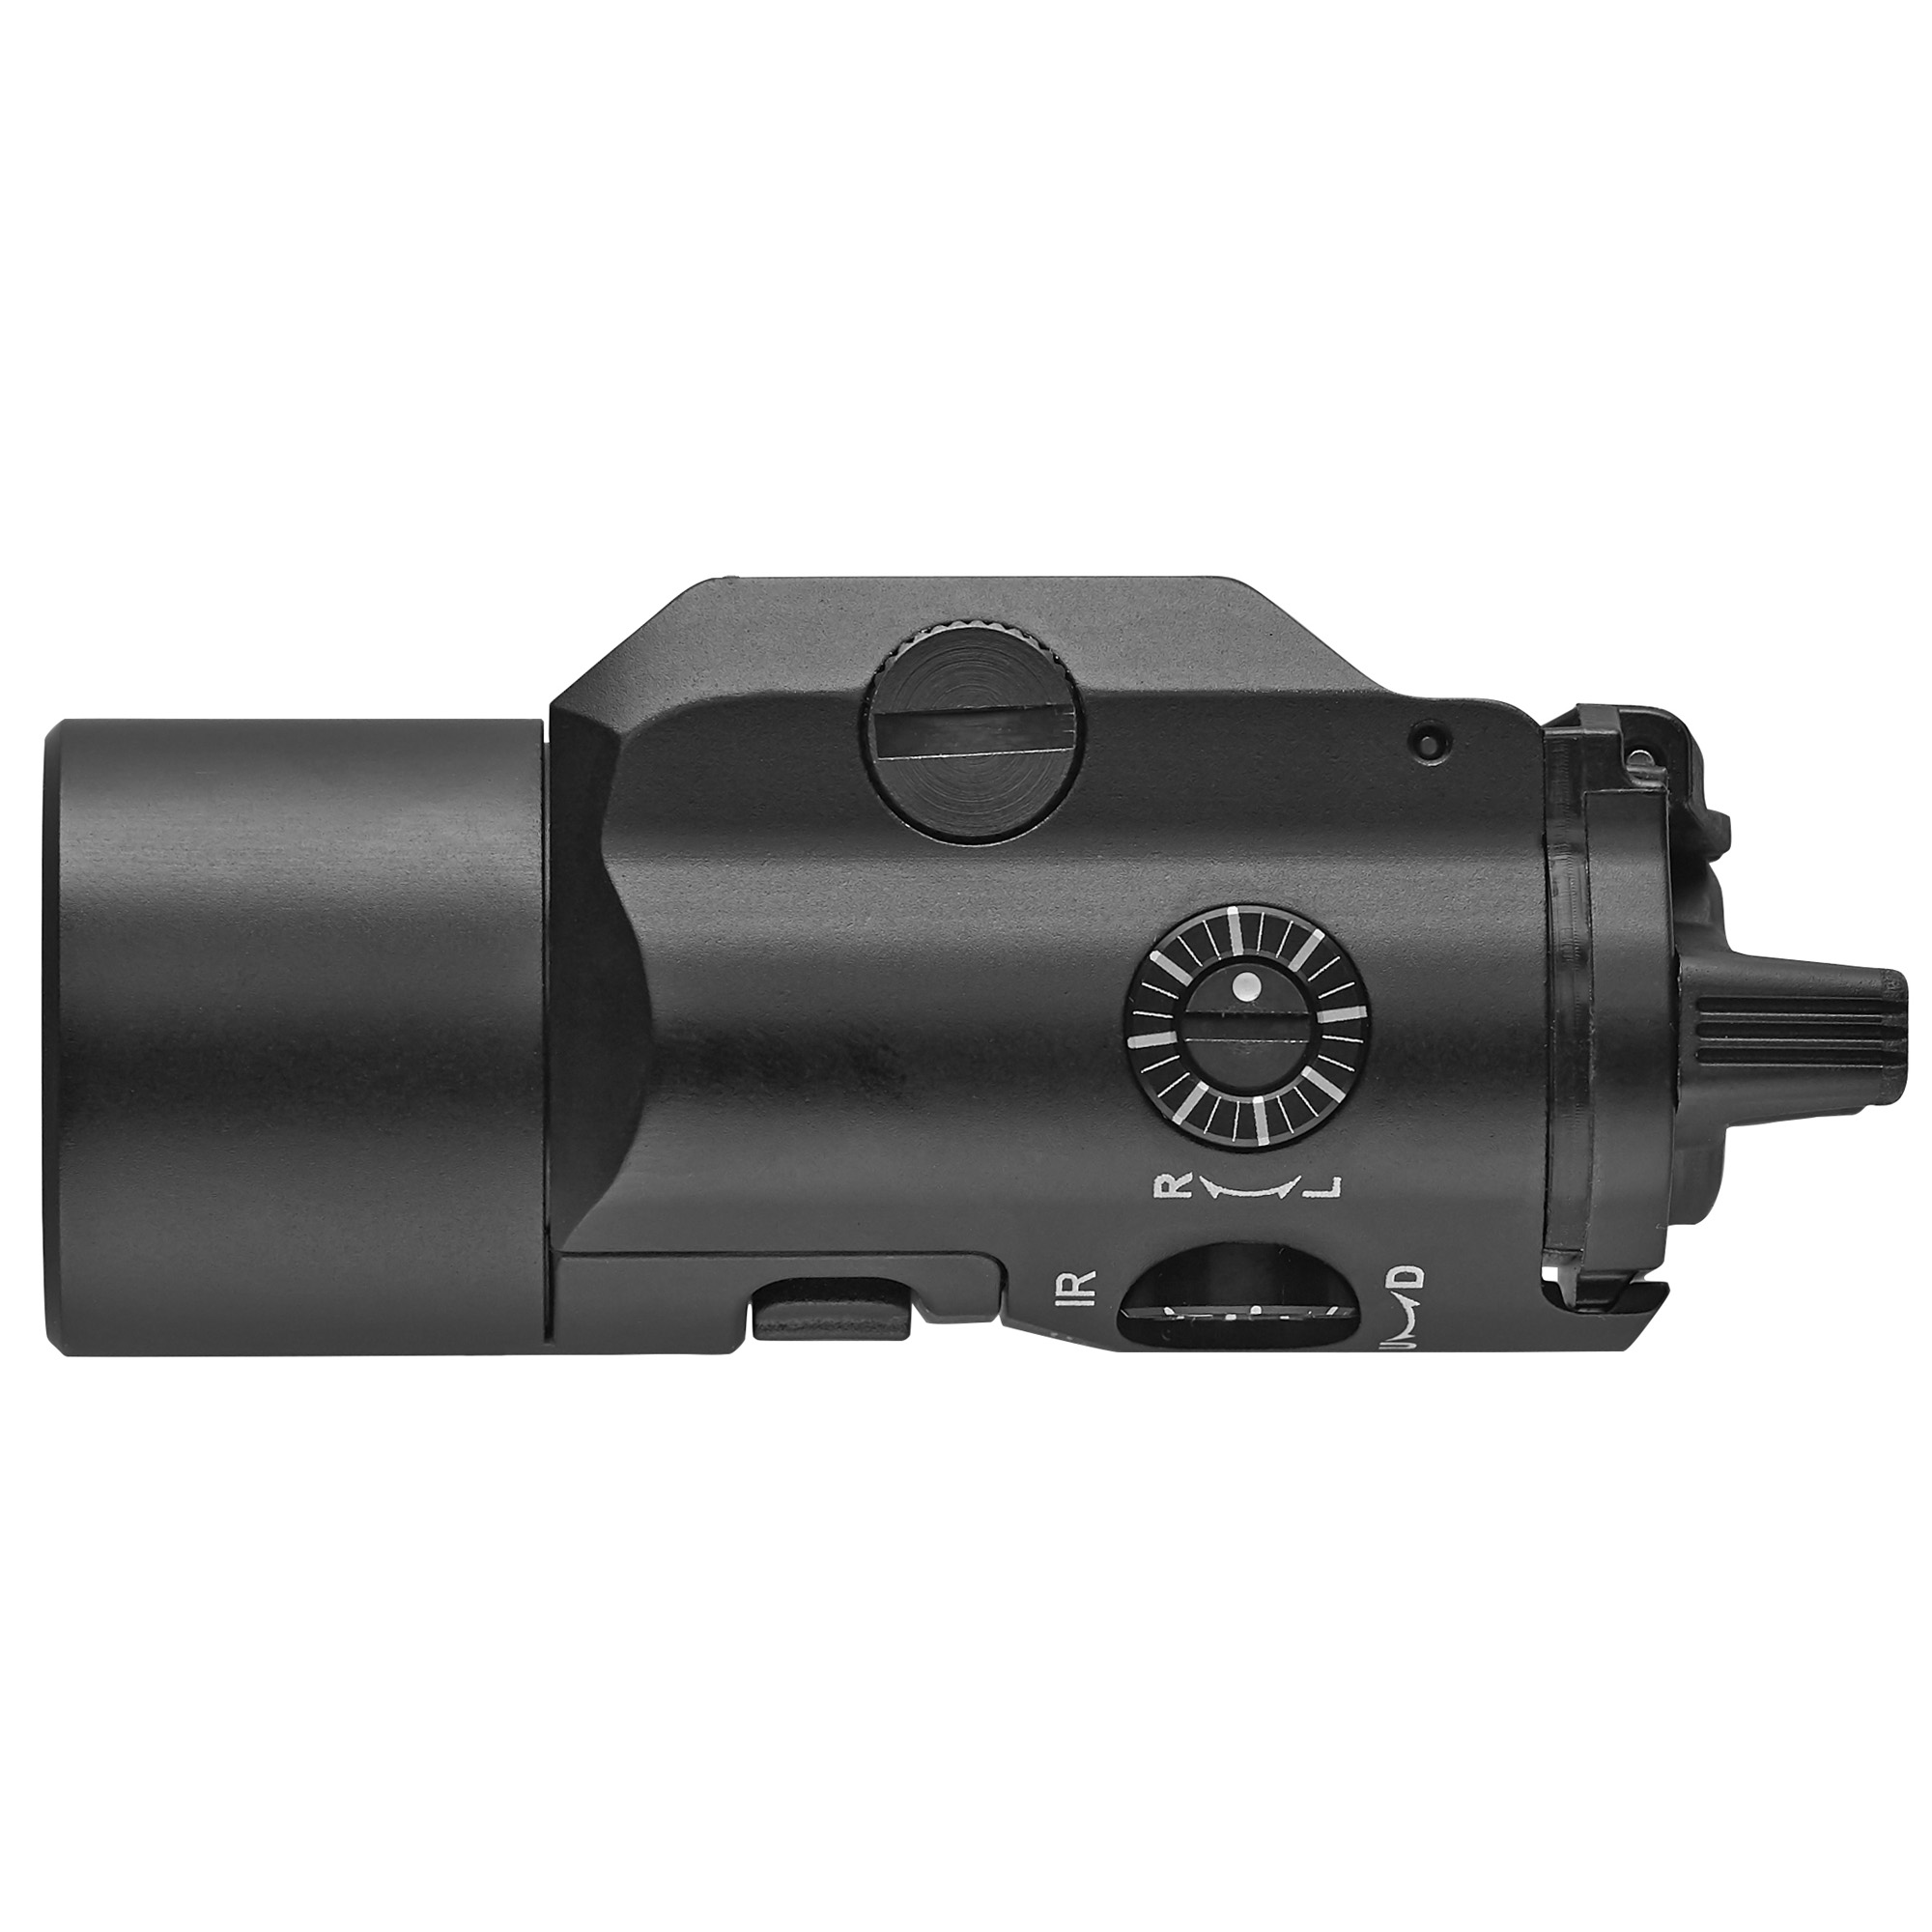 Streamlight TLR-VIR II Visible Light with Infrared Light and Laser, 300 Lumens, Aluminum, Black Finish